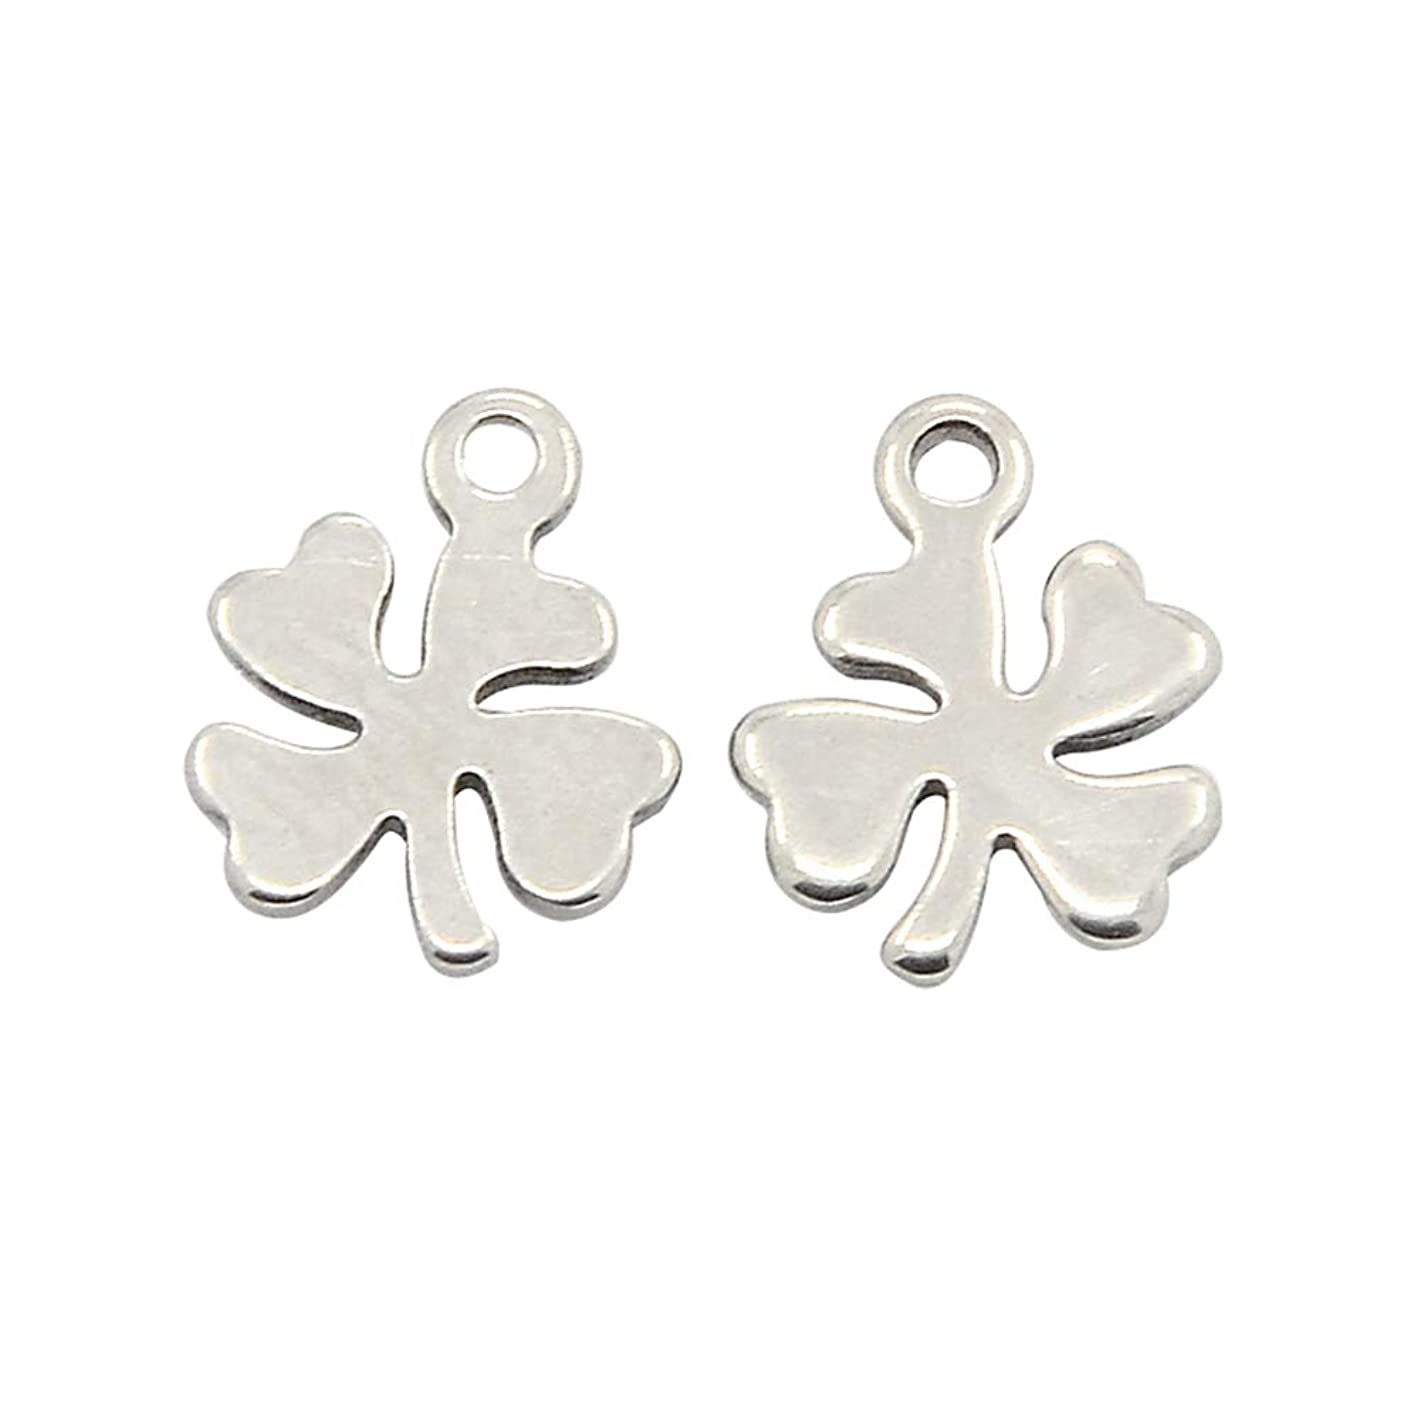 PH PandaHall 100pcs Stainless Steel Charms Four Leaves Clover Pendants for Bracelets Necklace Jewelry Making